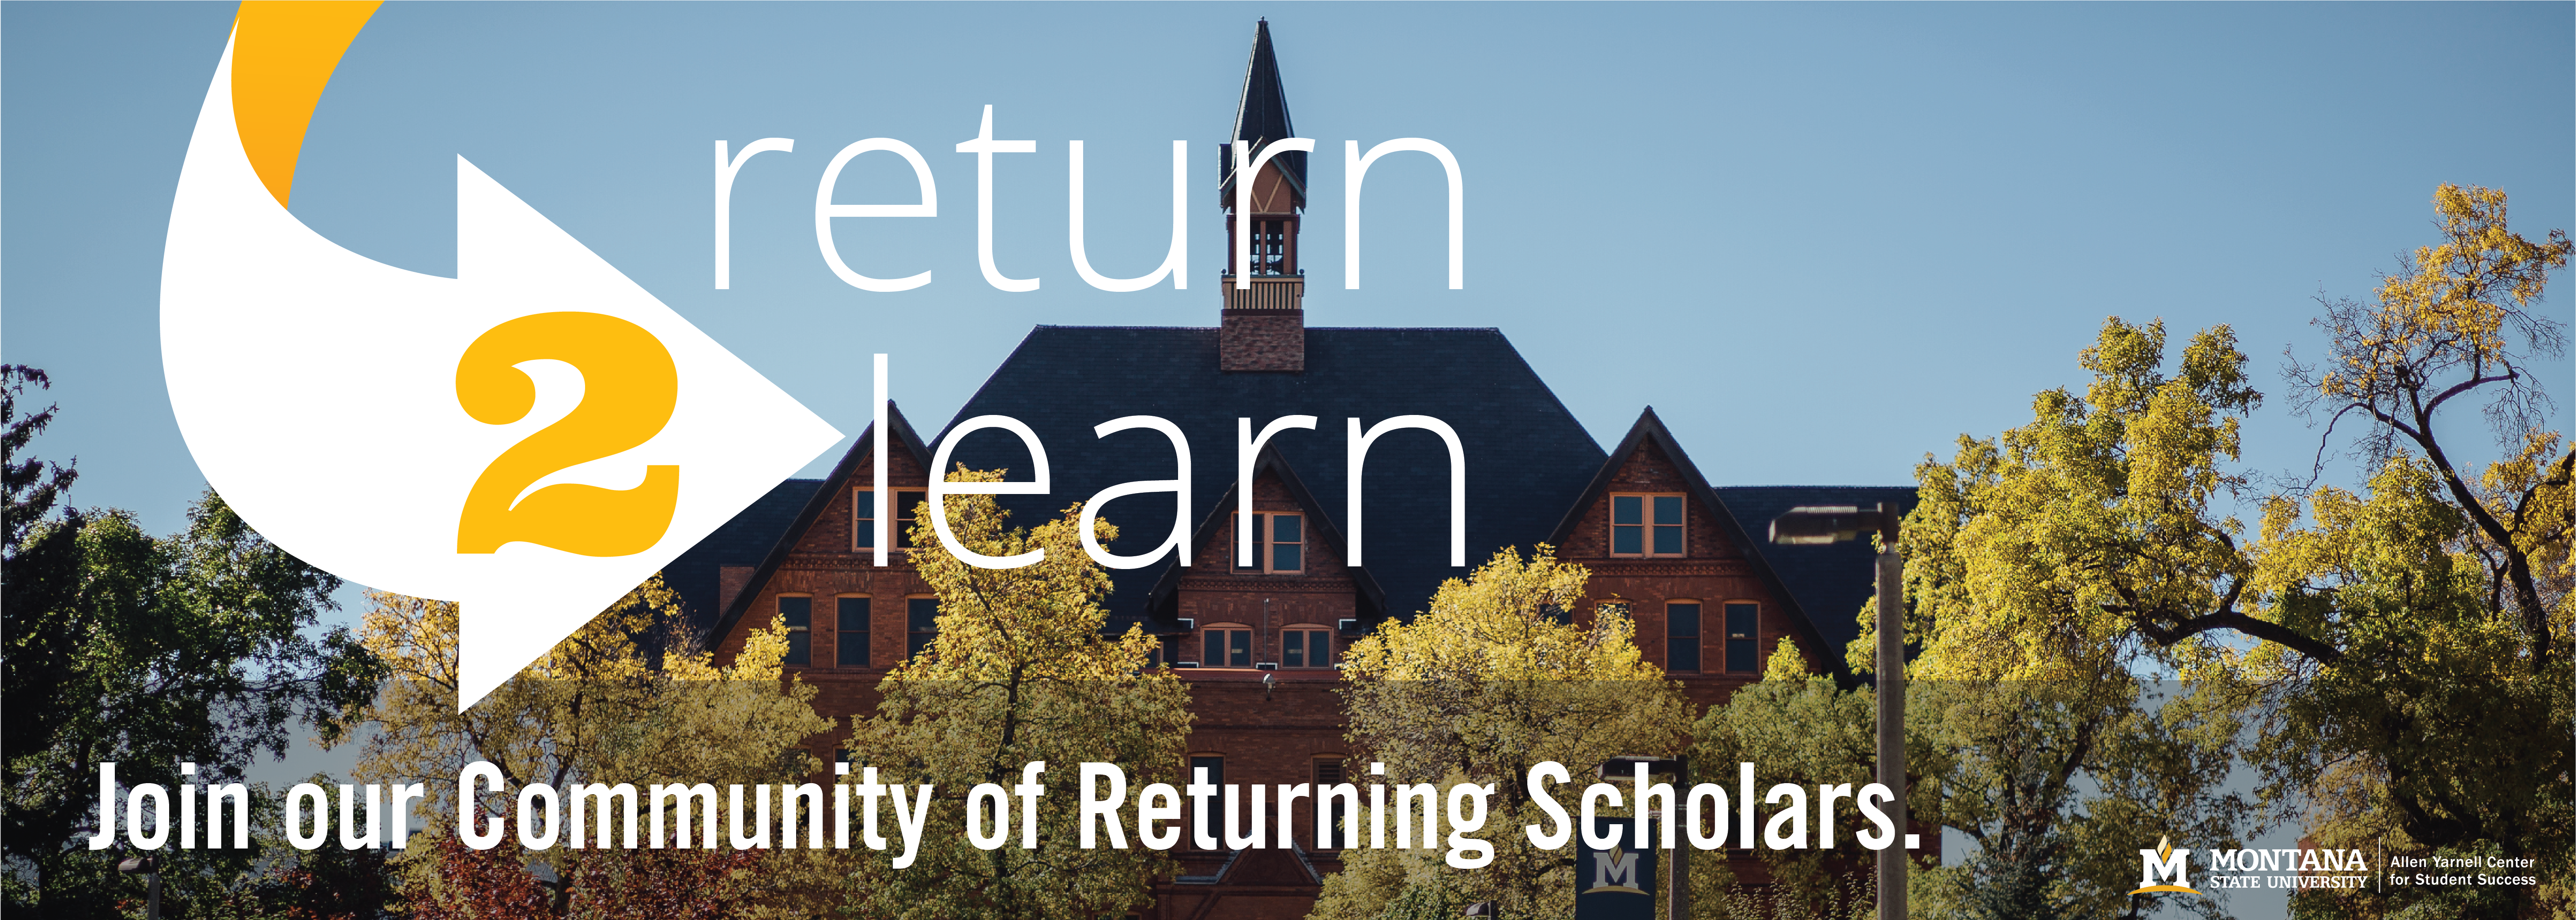 Join our community of returning scholars